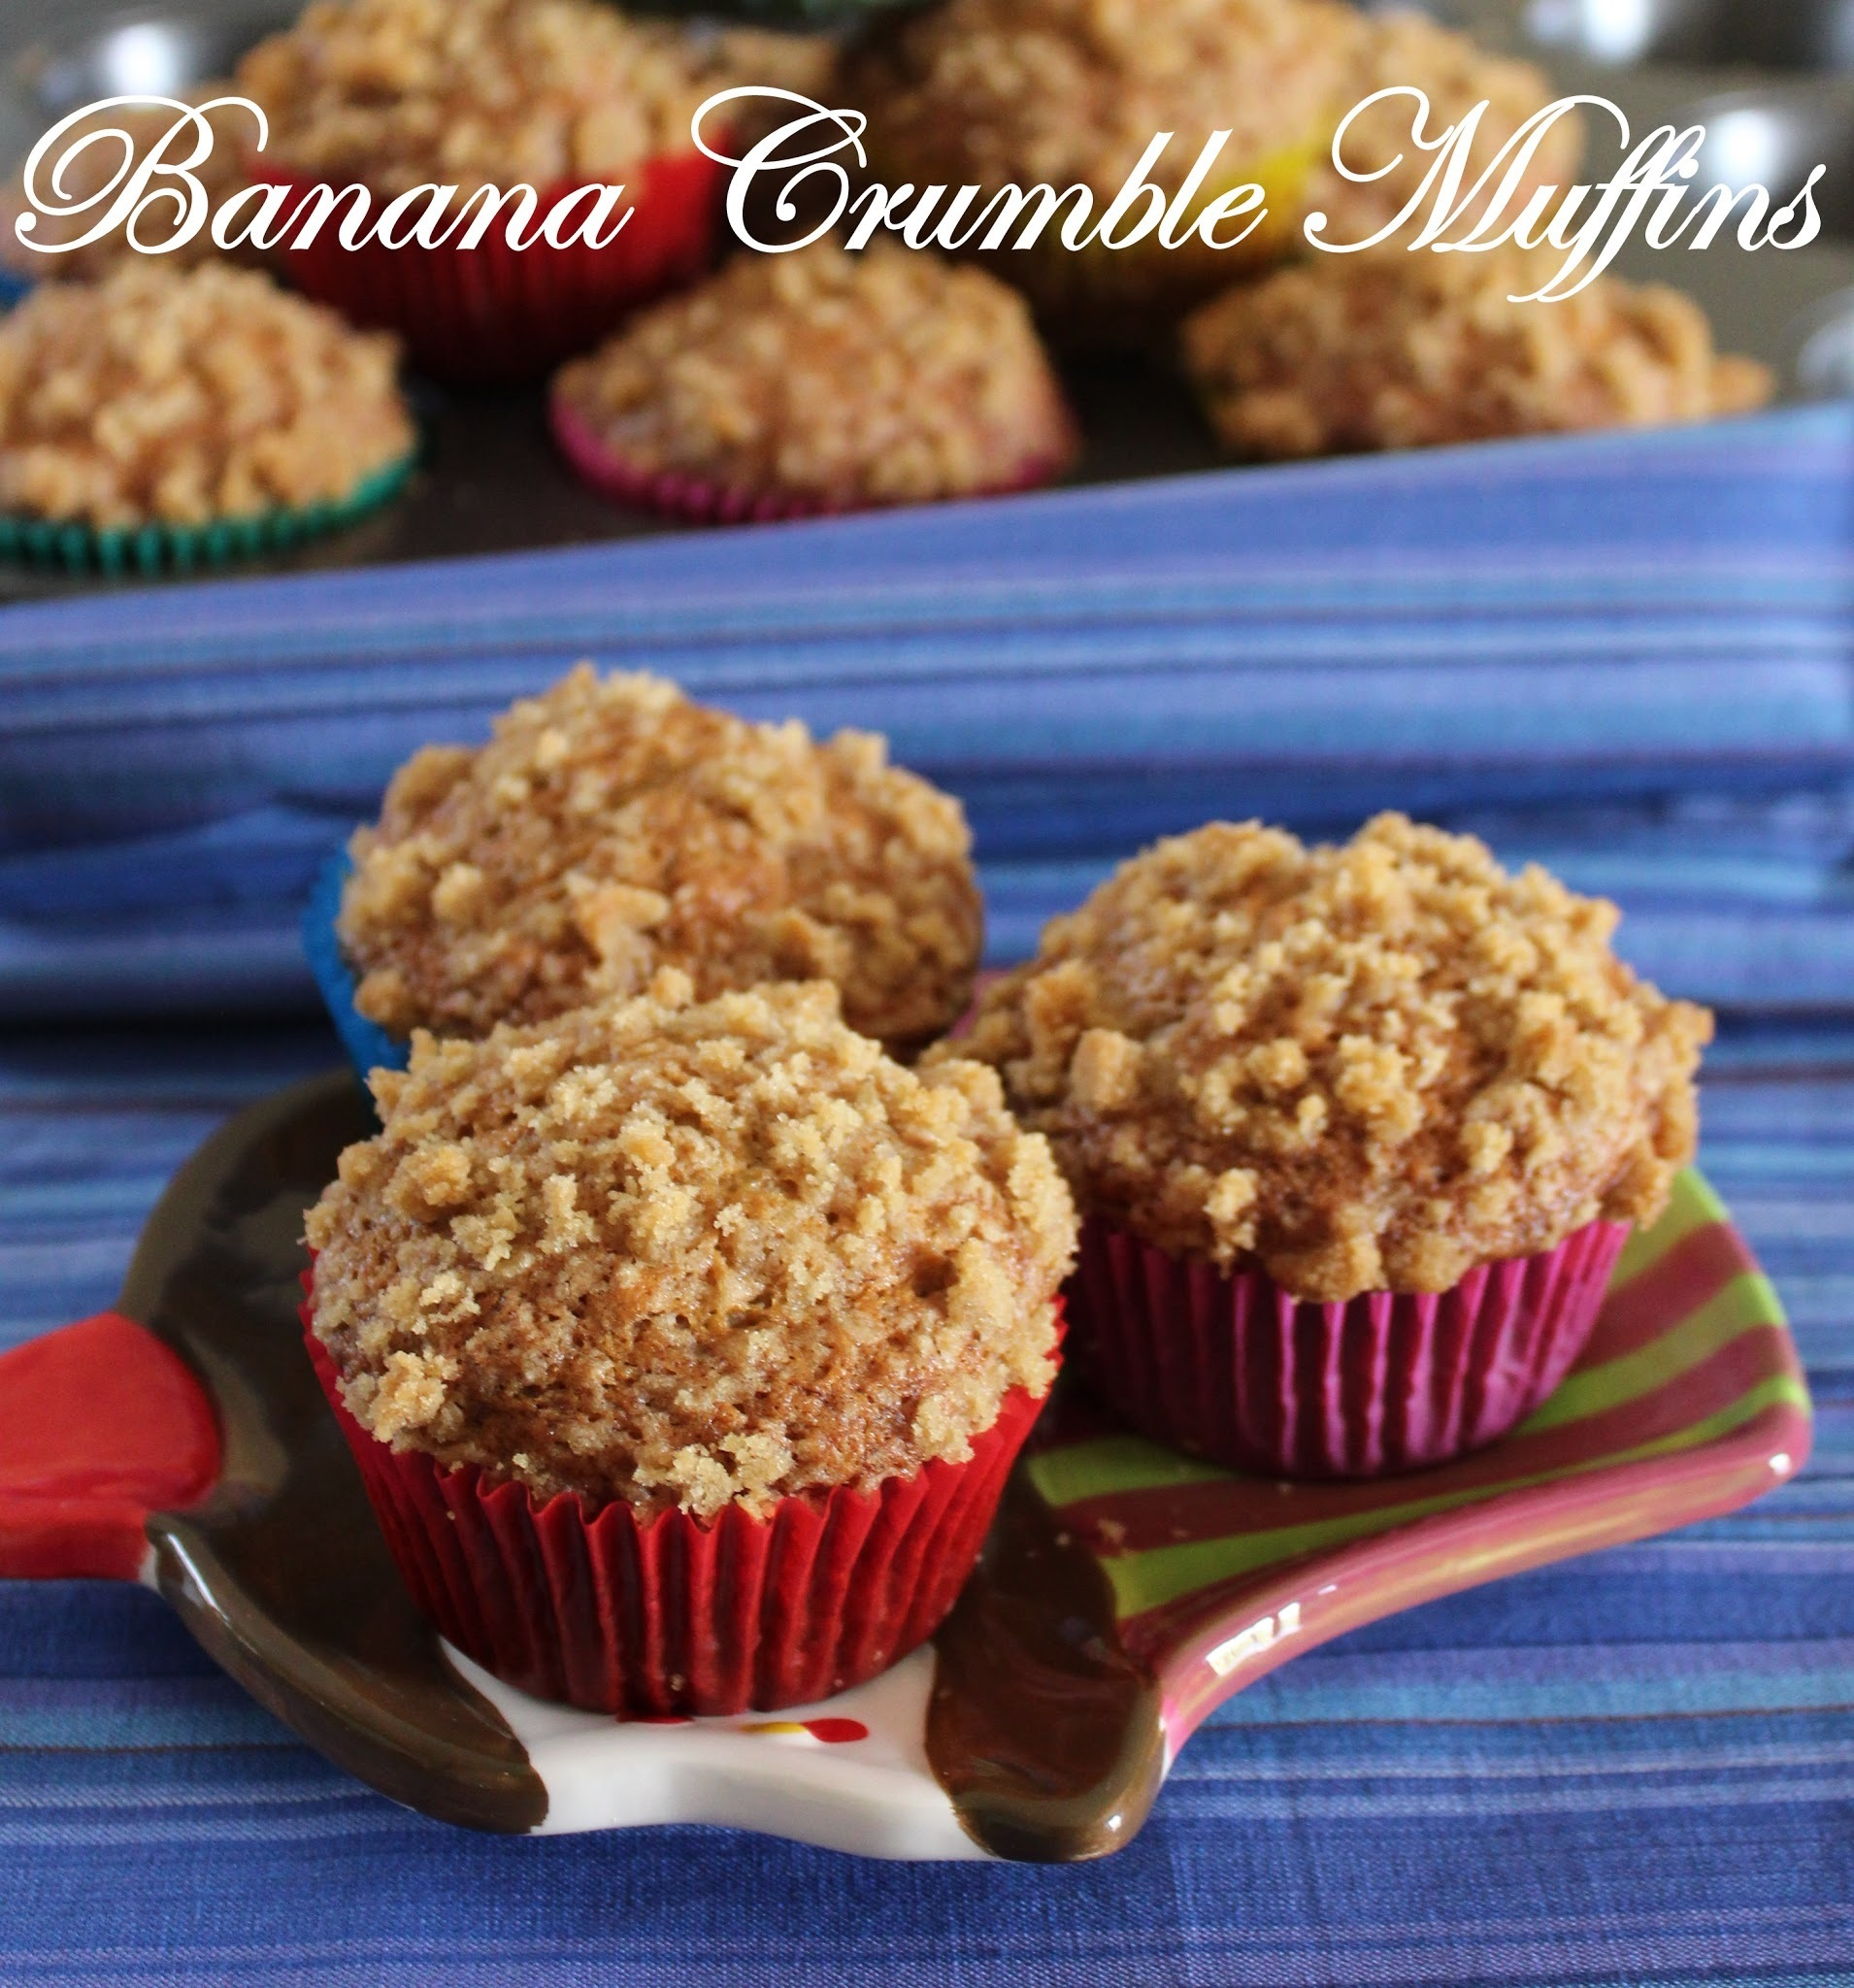 Greeting everyone with Banana Crumble Muffins......